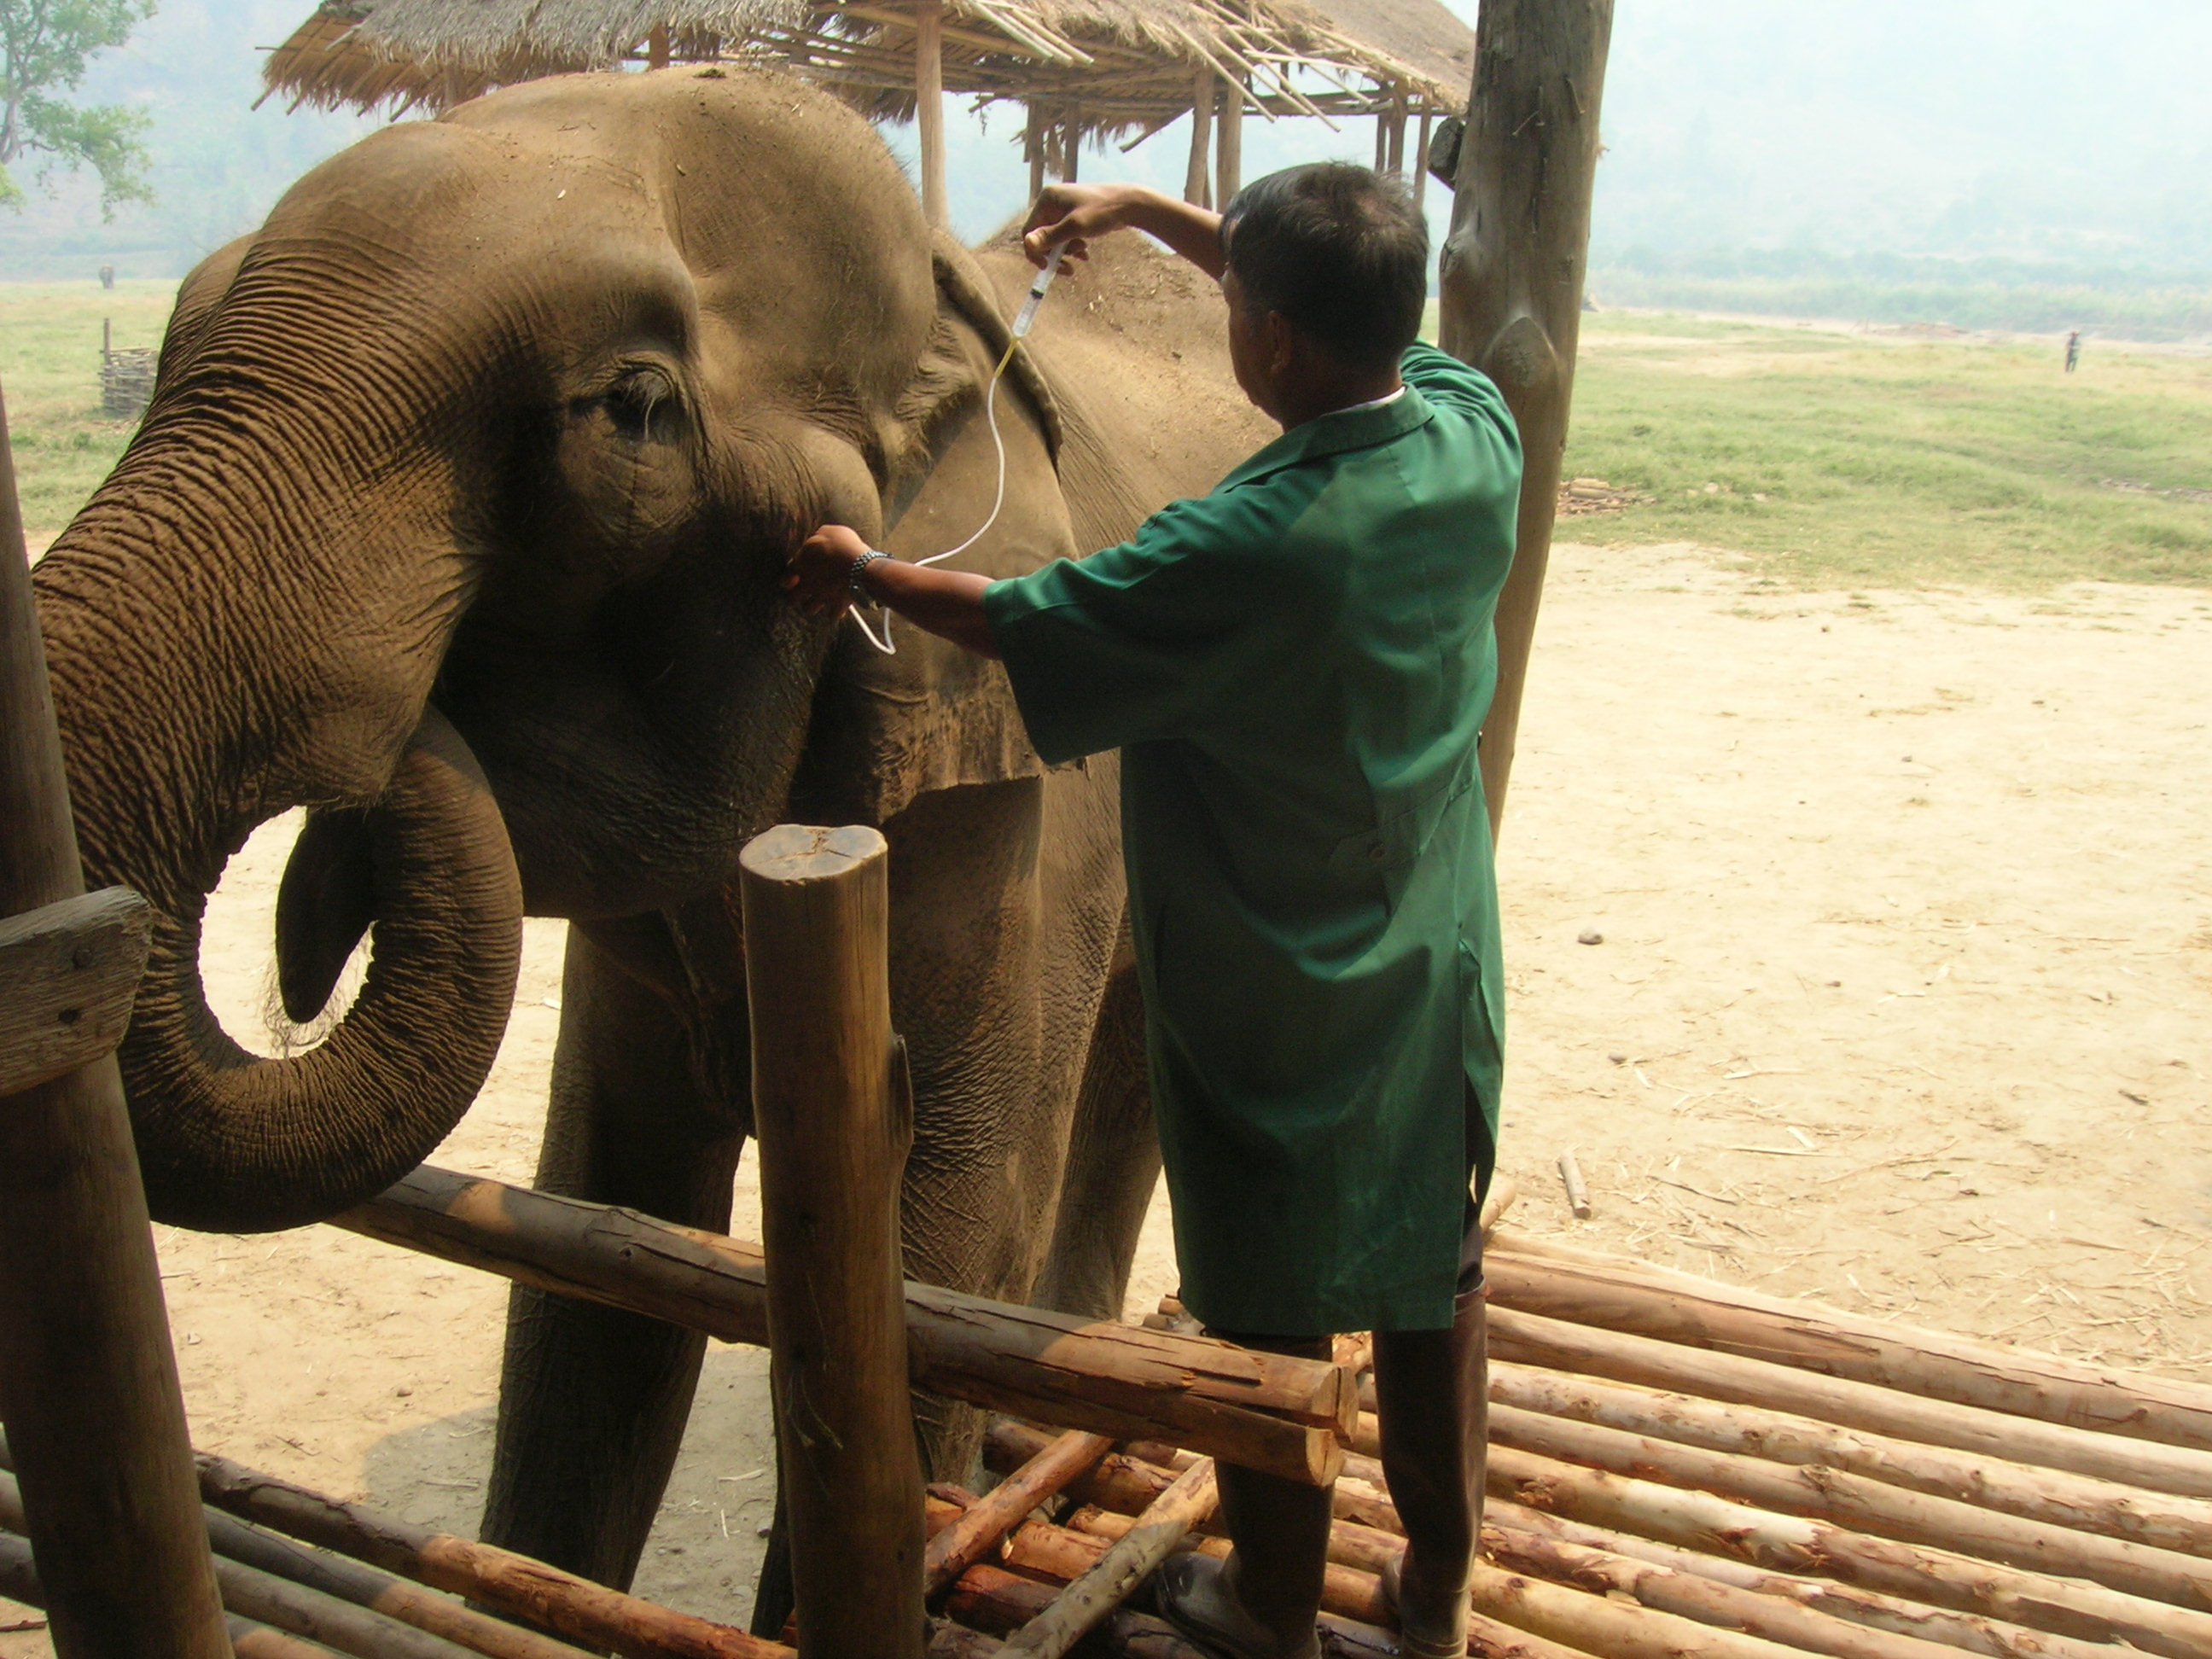 Vet treating elephant